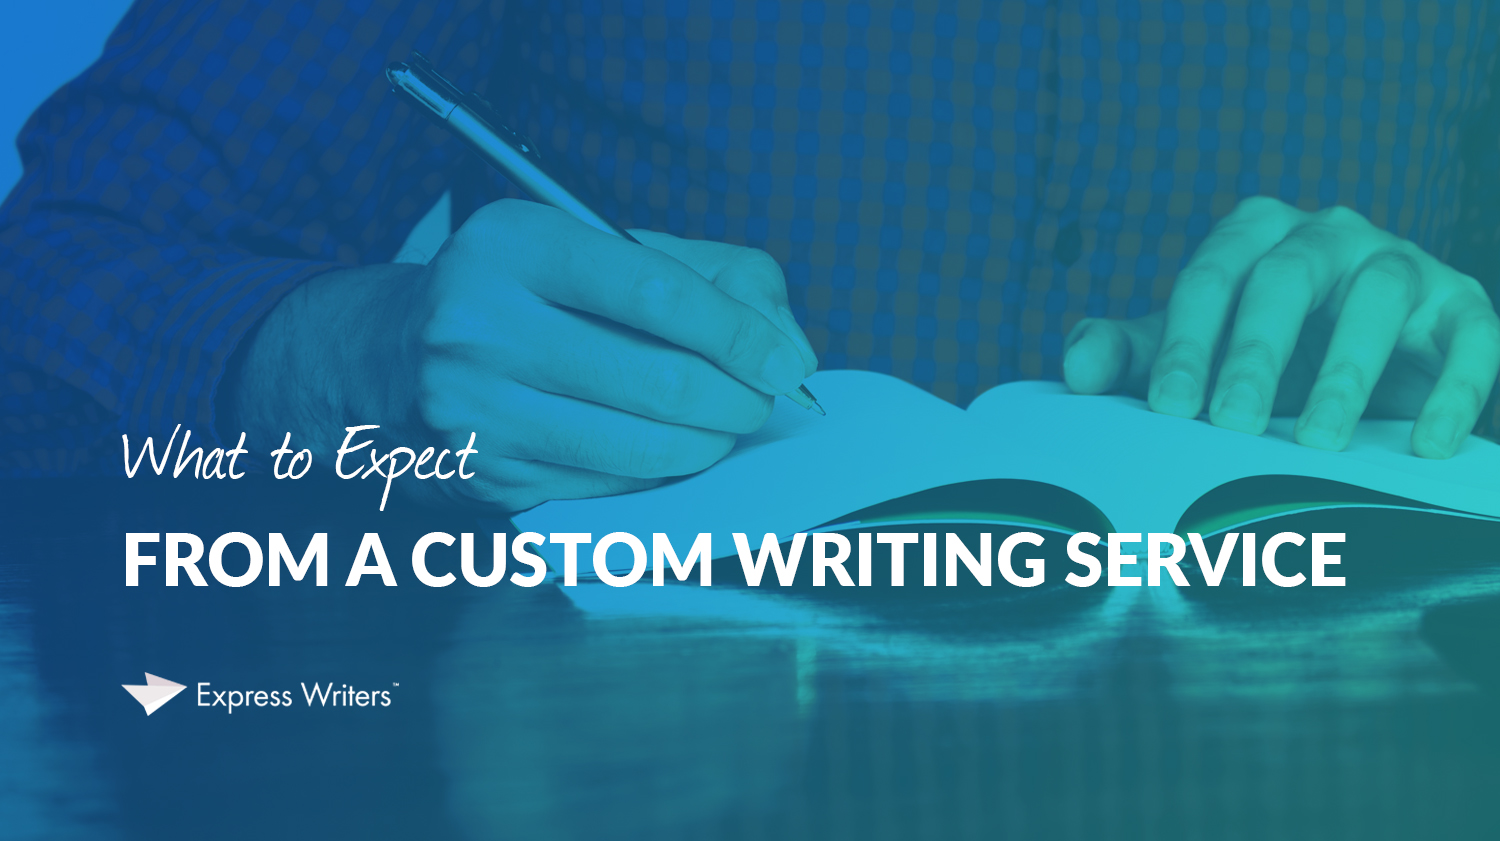 Custom Writing Service, copywriting service, content writing service